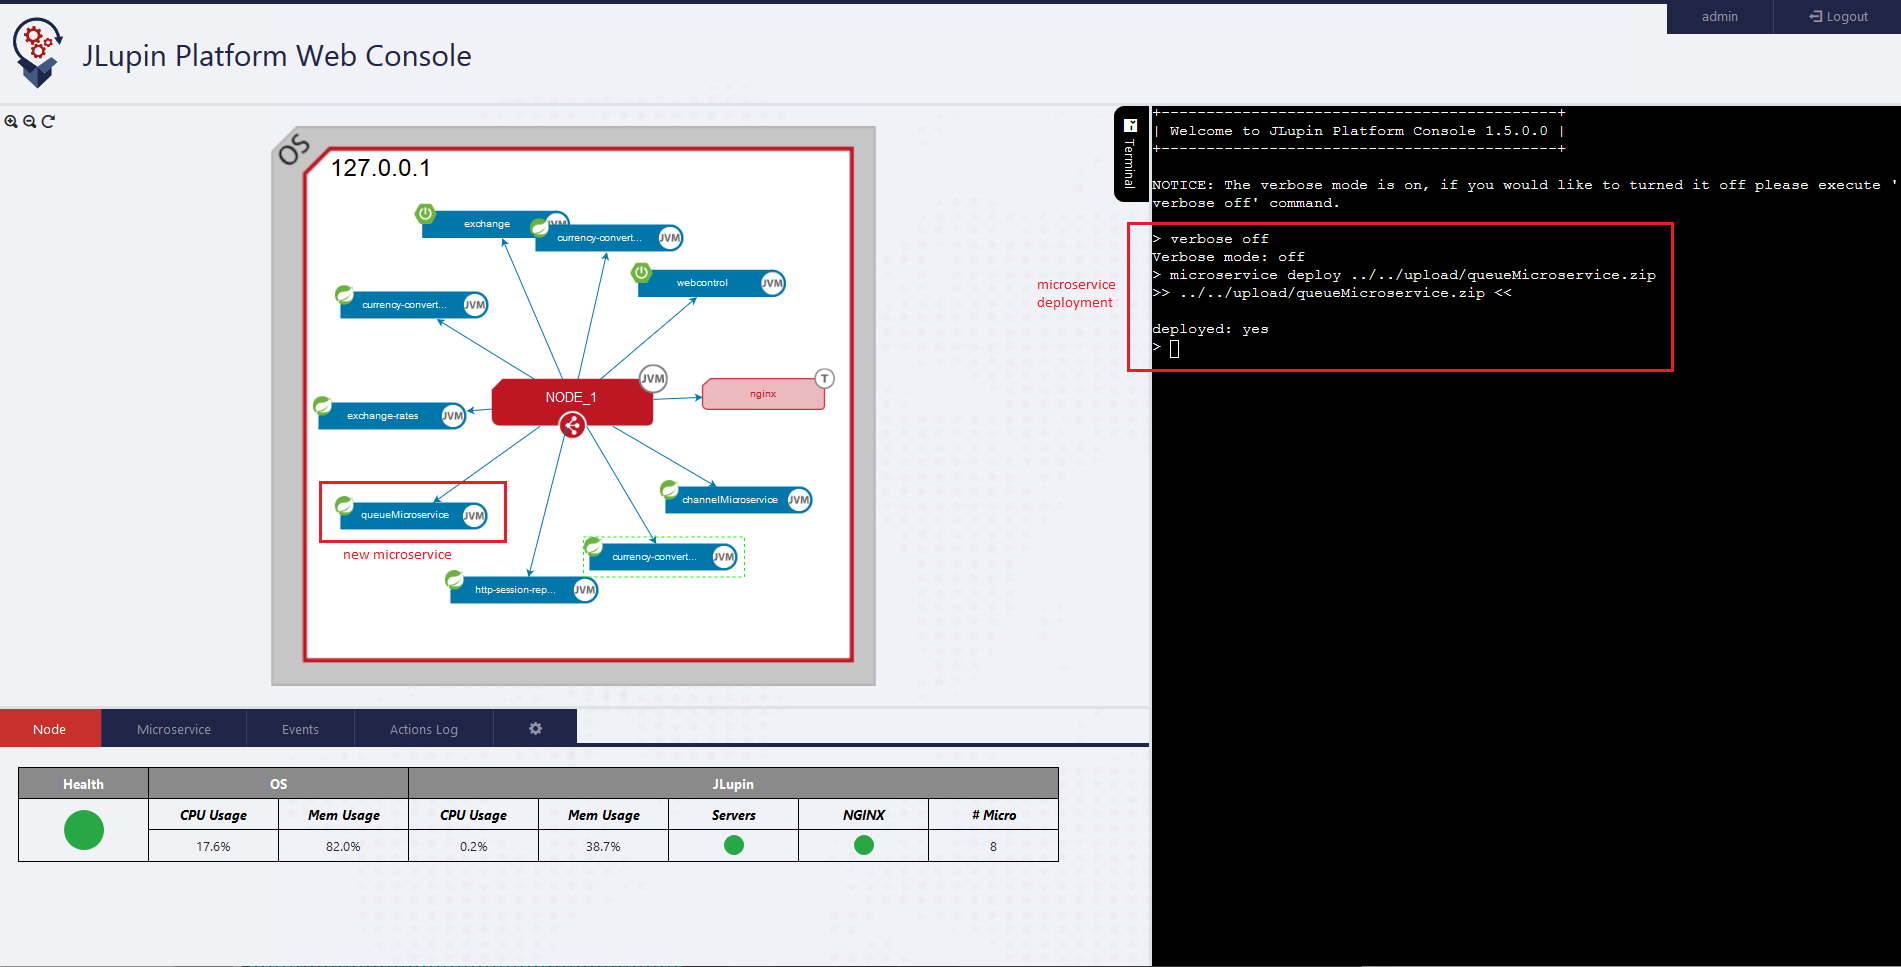 Figure 3. JLupin Platform Web Console - Visualizer - a new microservice.